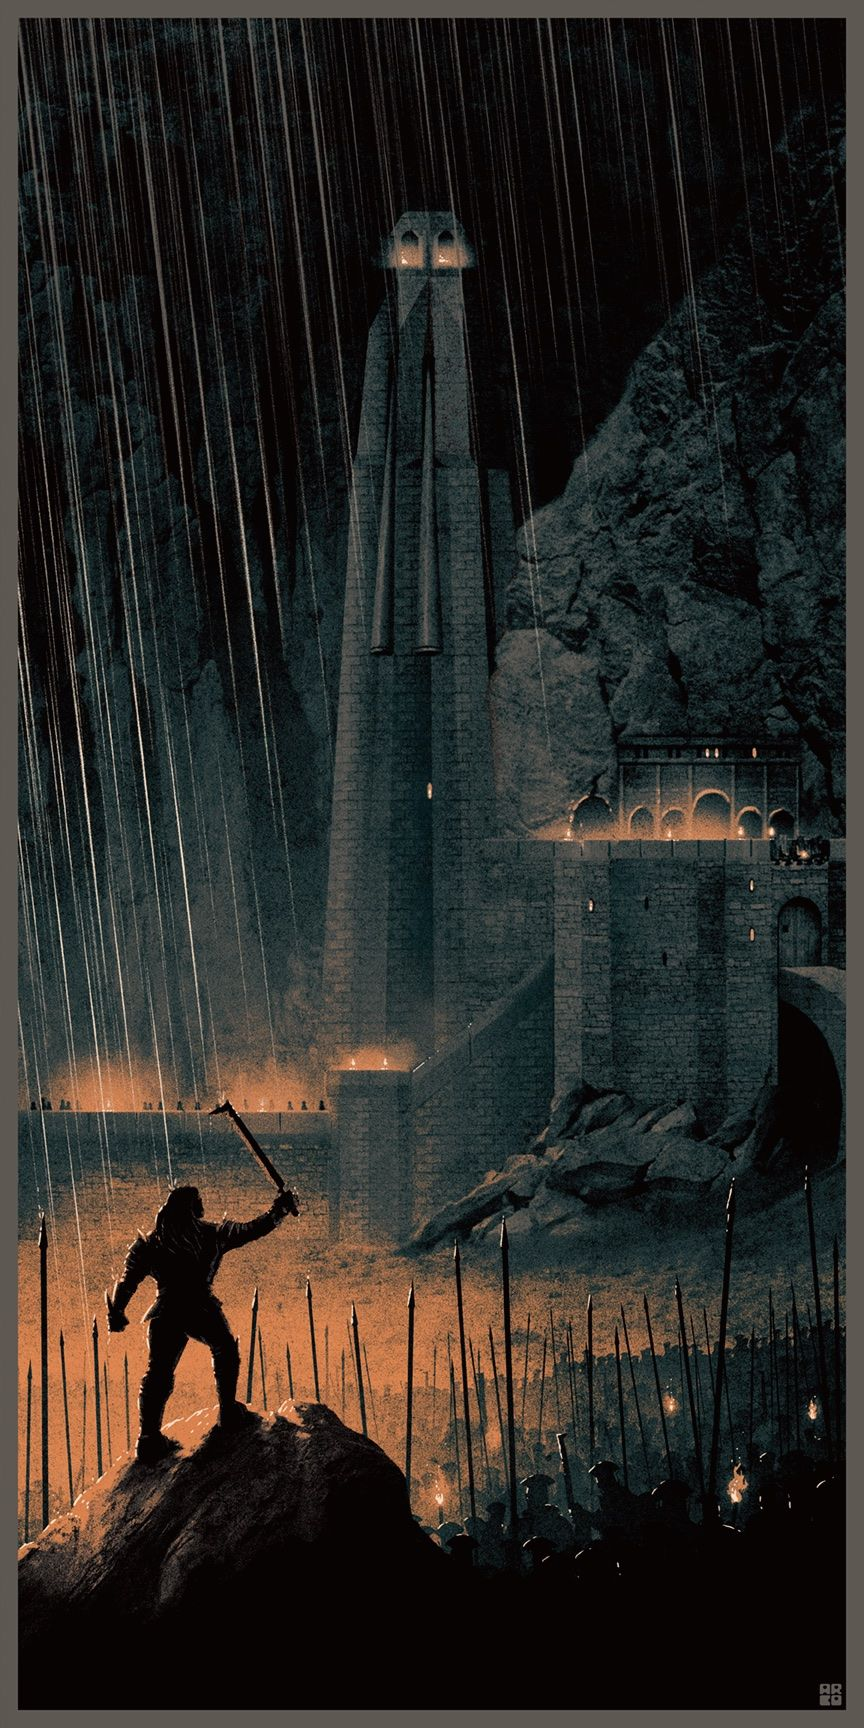 Lord Of The Rings Tarot The Hermit By Sceithailm On: Matt Ferguson's Lord Of The Rings Posters Are Amazing